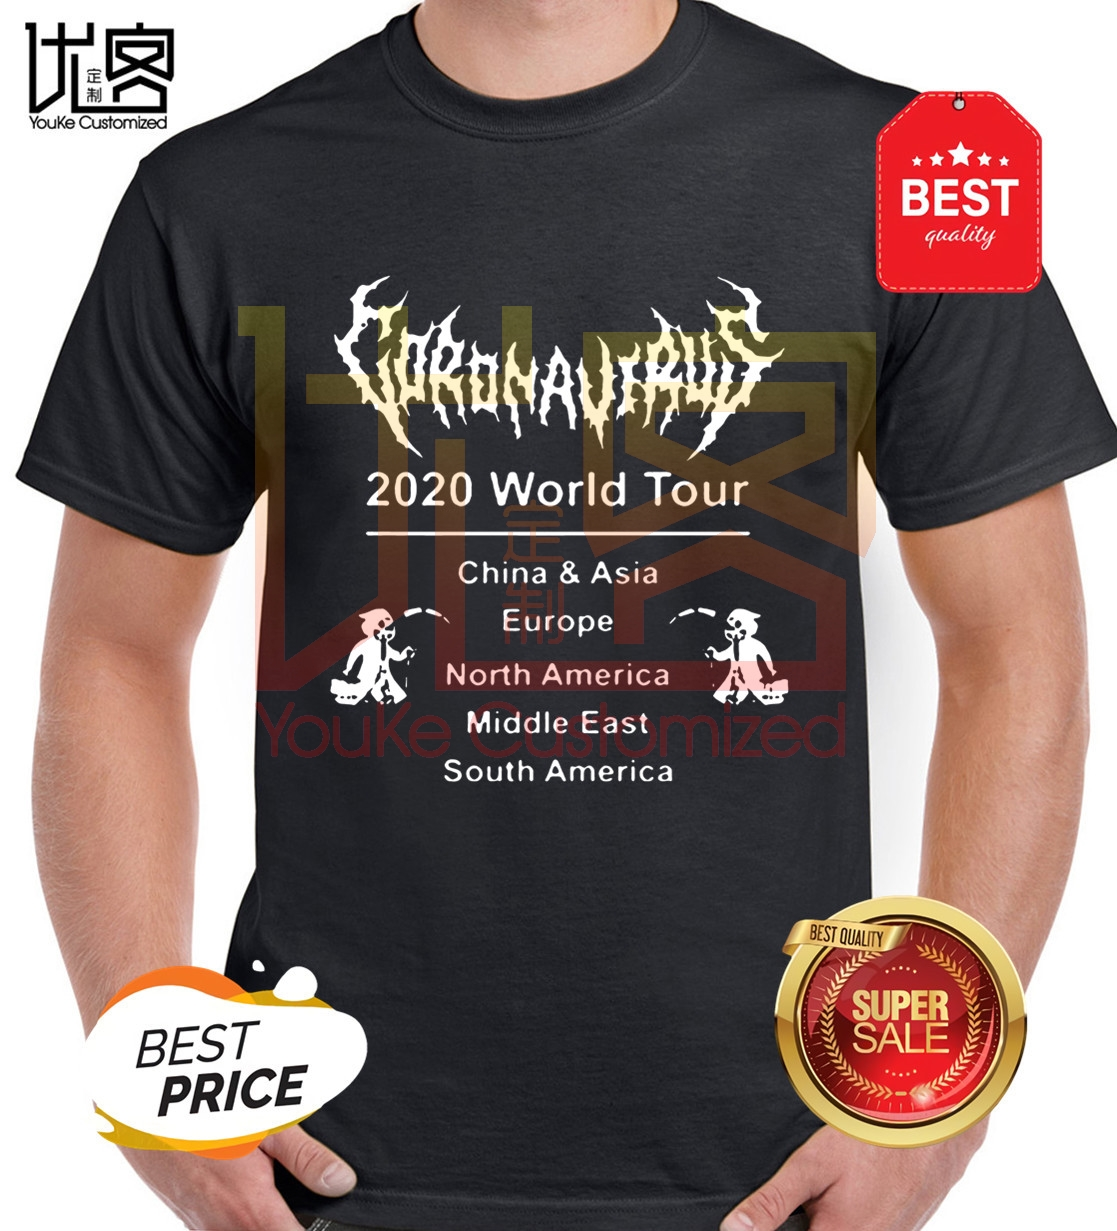 Hot-2020-coronavirus-shirt-world-tour-2020-t-shirt Men's Women's 100% Cotton Short Sleeves Tops Tee Printed Crewneck T-shirt